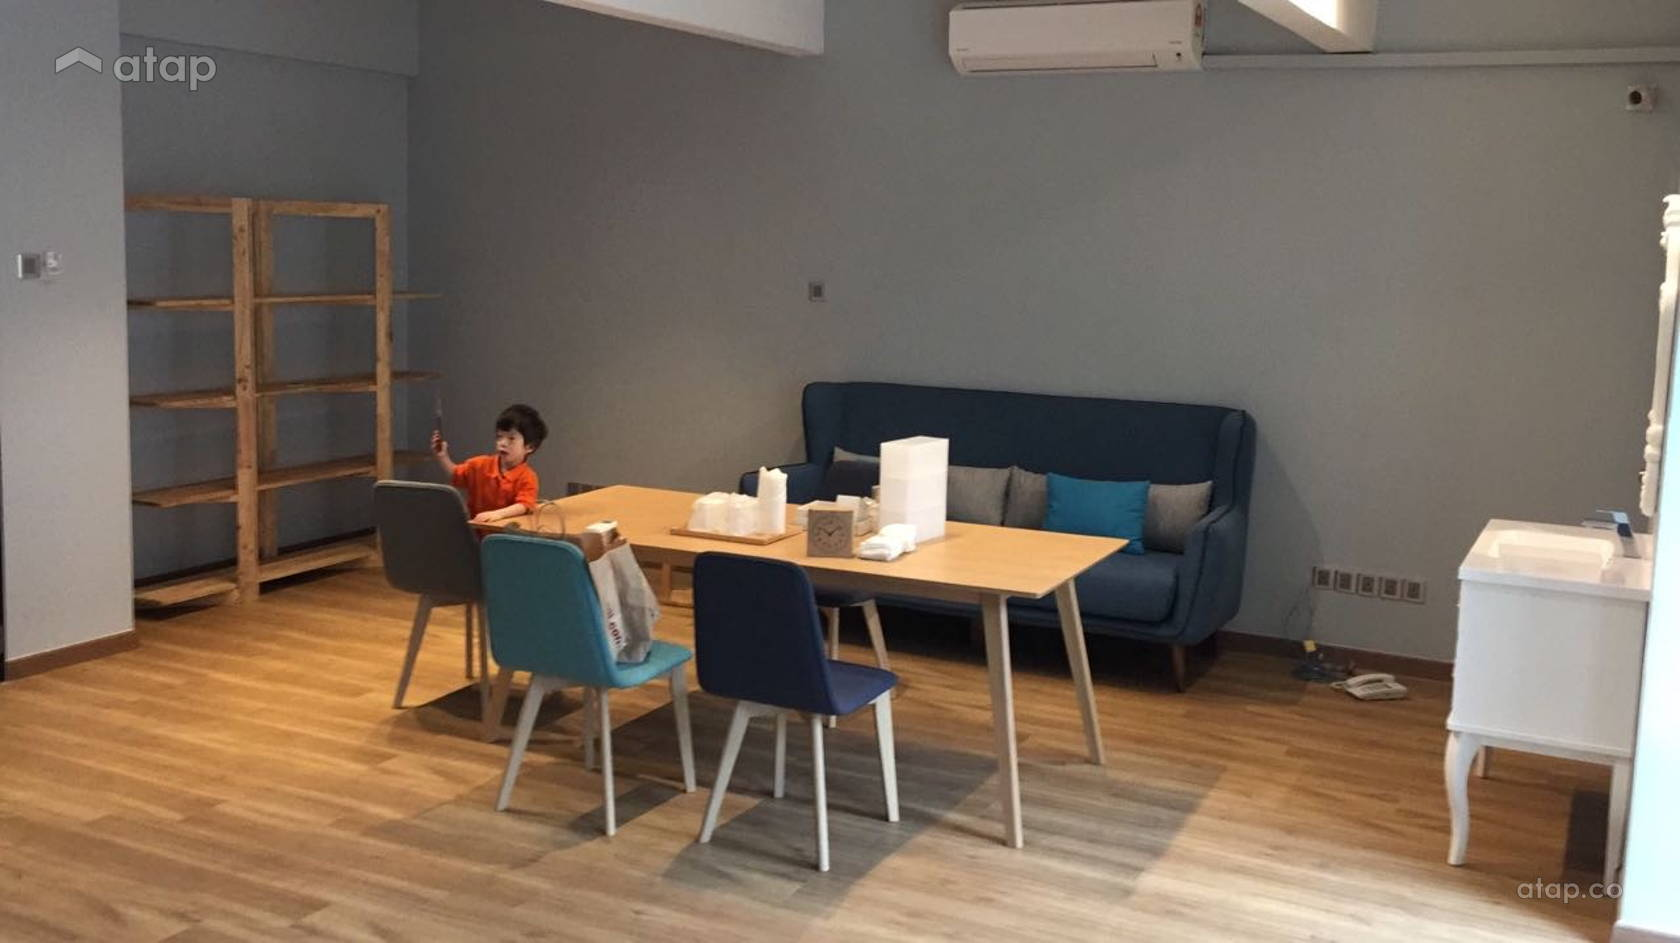 Klinik Q interior design renovation ideas, photos and price in Malaysia |  Atap.co